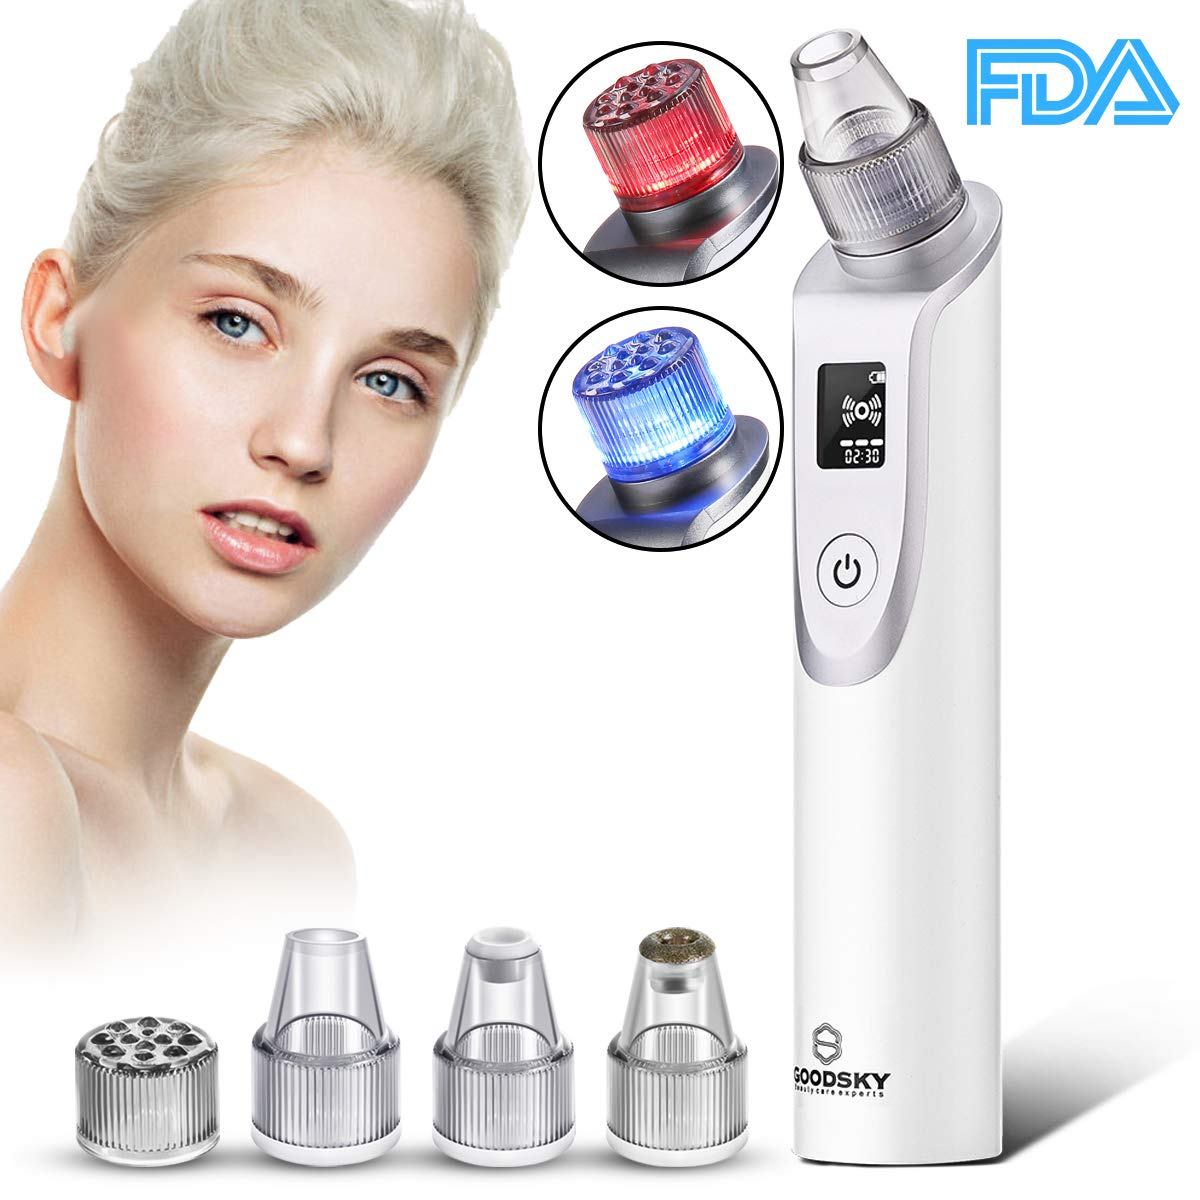 Blackhead Remover, Pore cleanser Vacuum Blackhead removal Suction Machine, Rechargeable Pore Cleaner Device for Facial Skin Treatment with Multi-Functional Replaceable 5 Probes with LED Screen LIKII